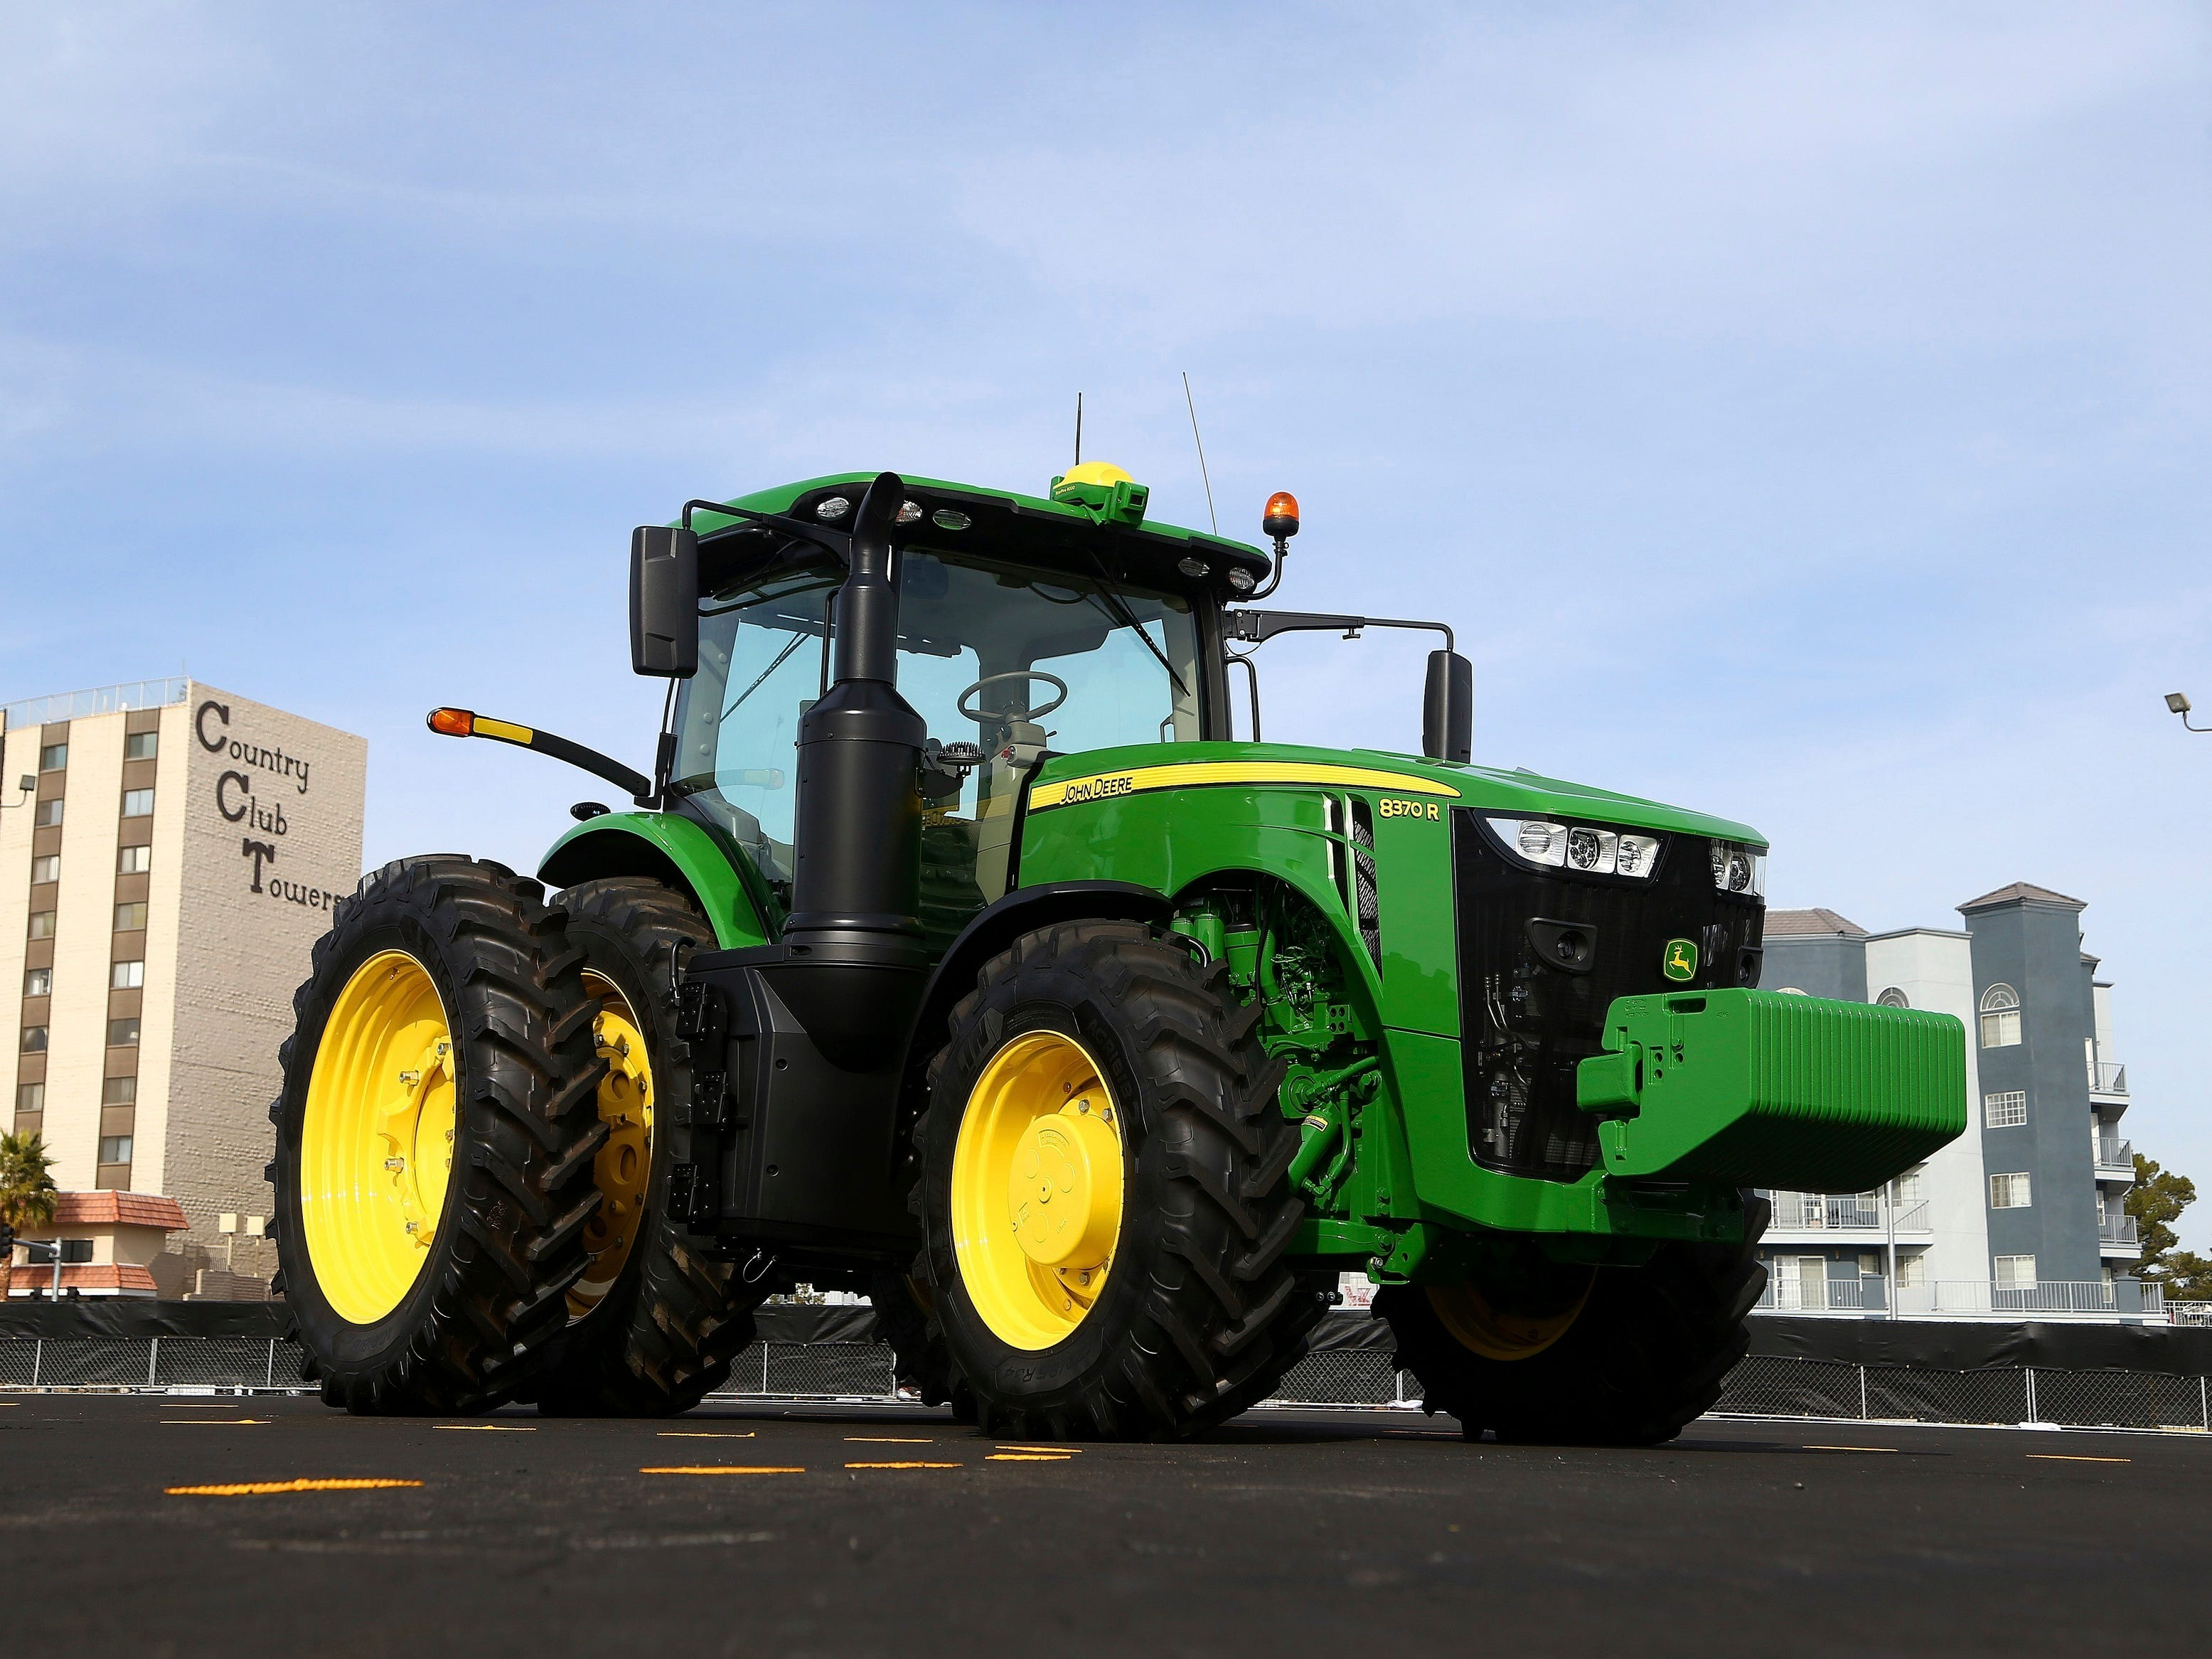 John Deere has hauled in a self-driving tractor aided by cameras with computer-vision technology to track the self-driving precision and program the route to be driven.